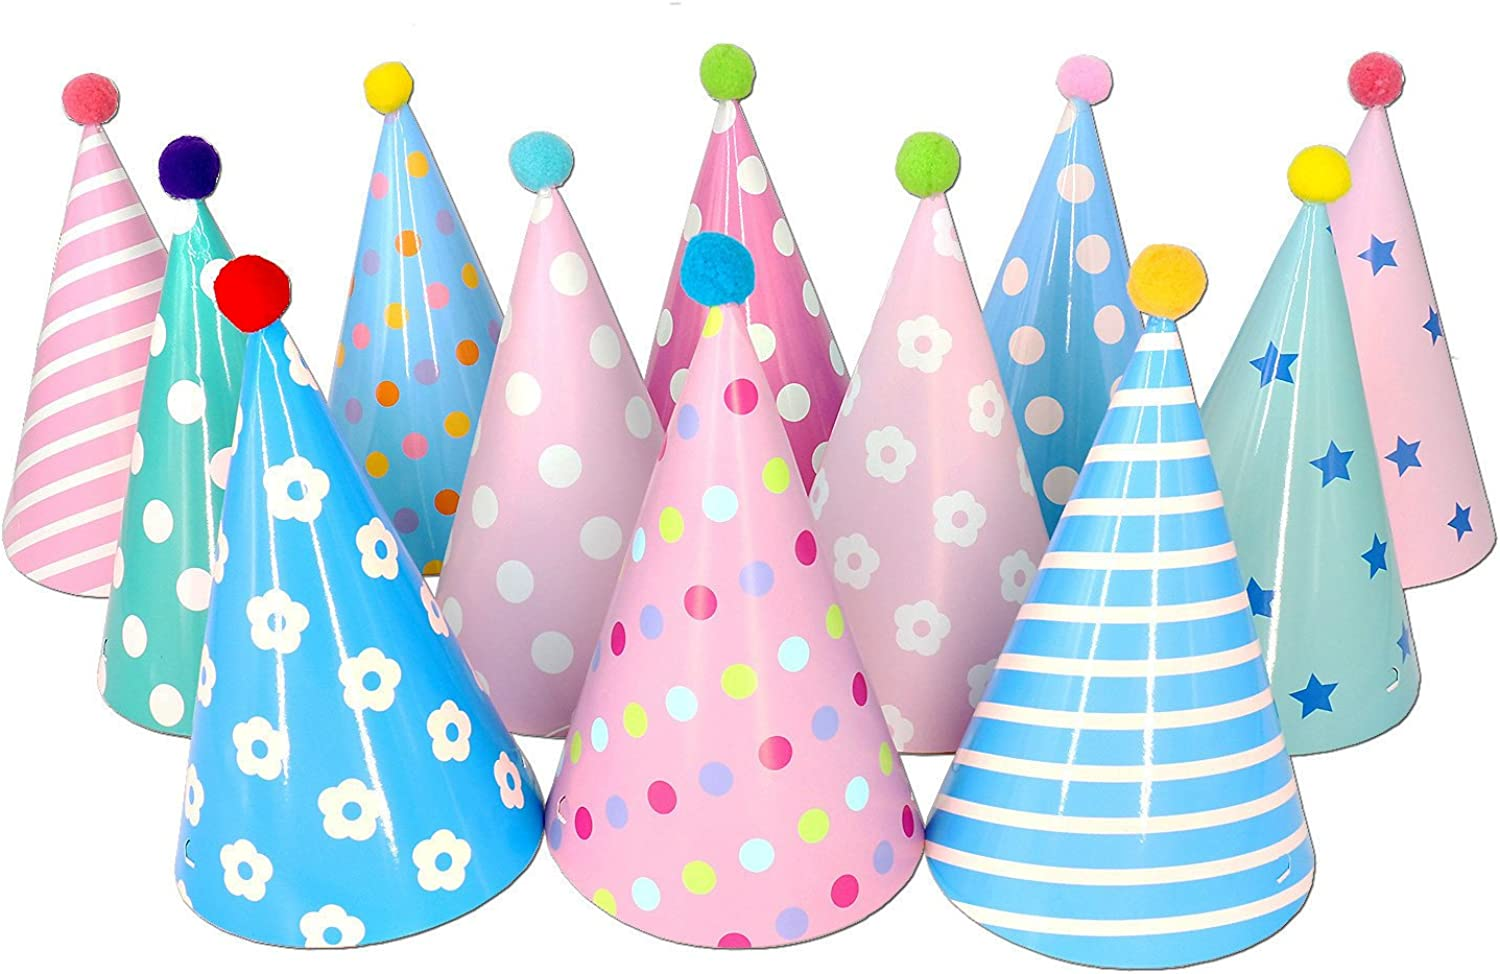 Beurio Kids Happy Birthday Paper Party Cone Hats with Pom Poms, 12ct: Clothing